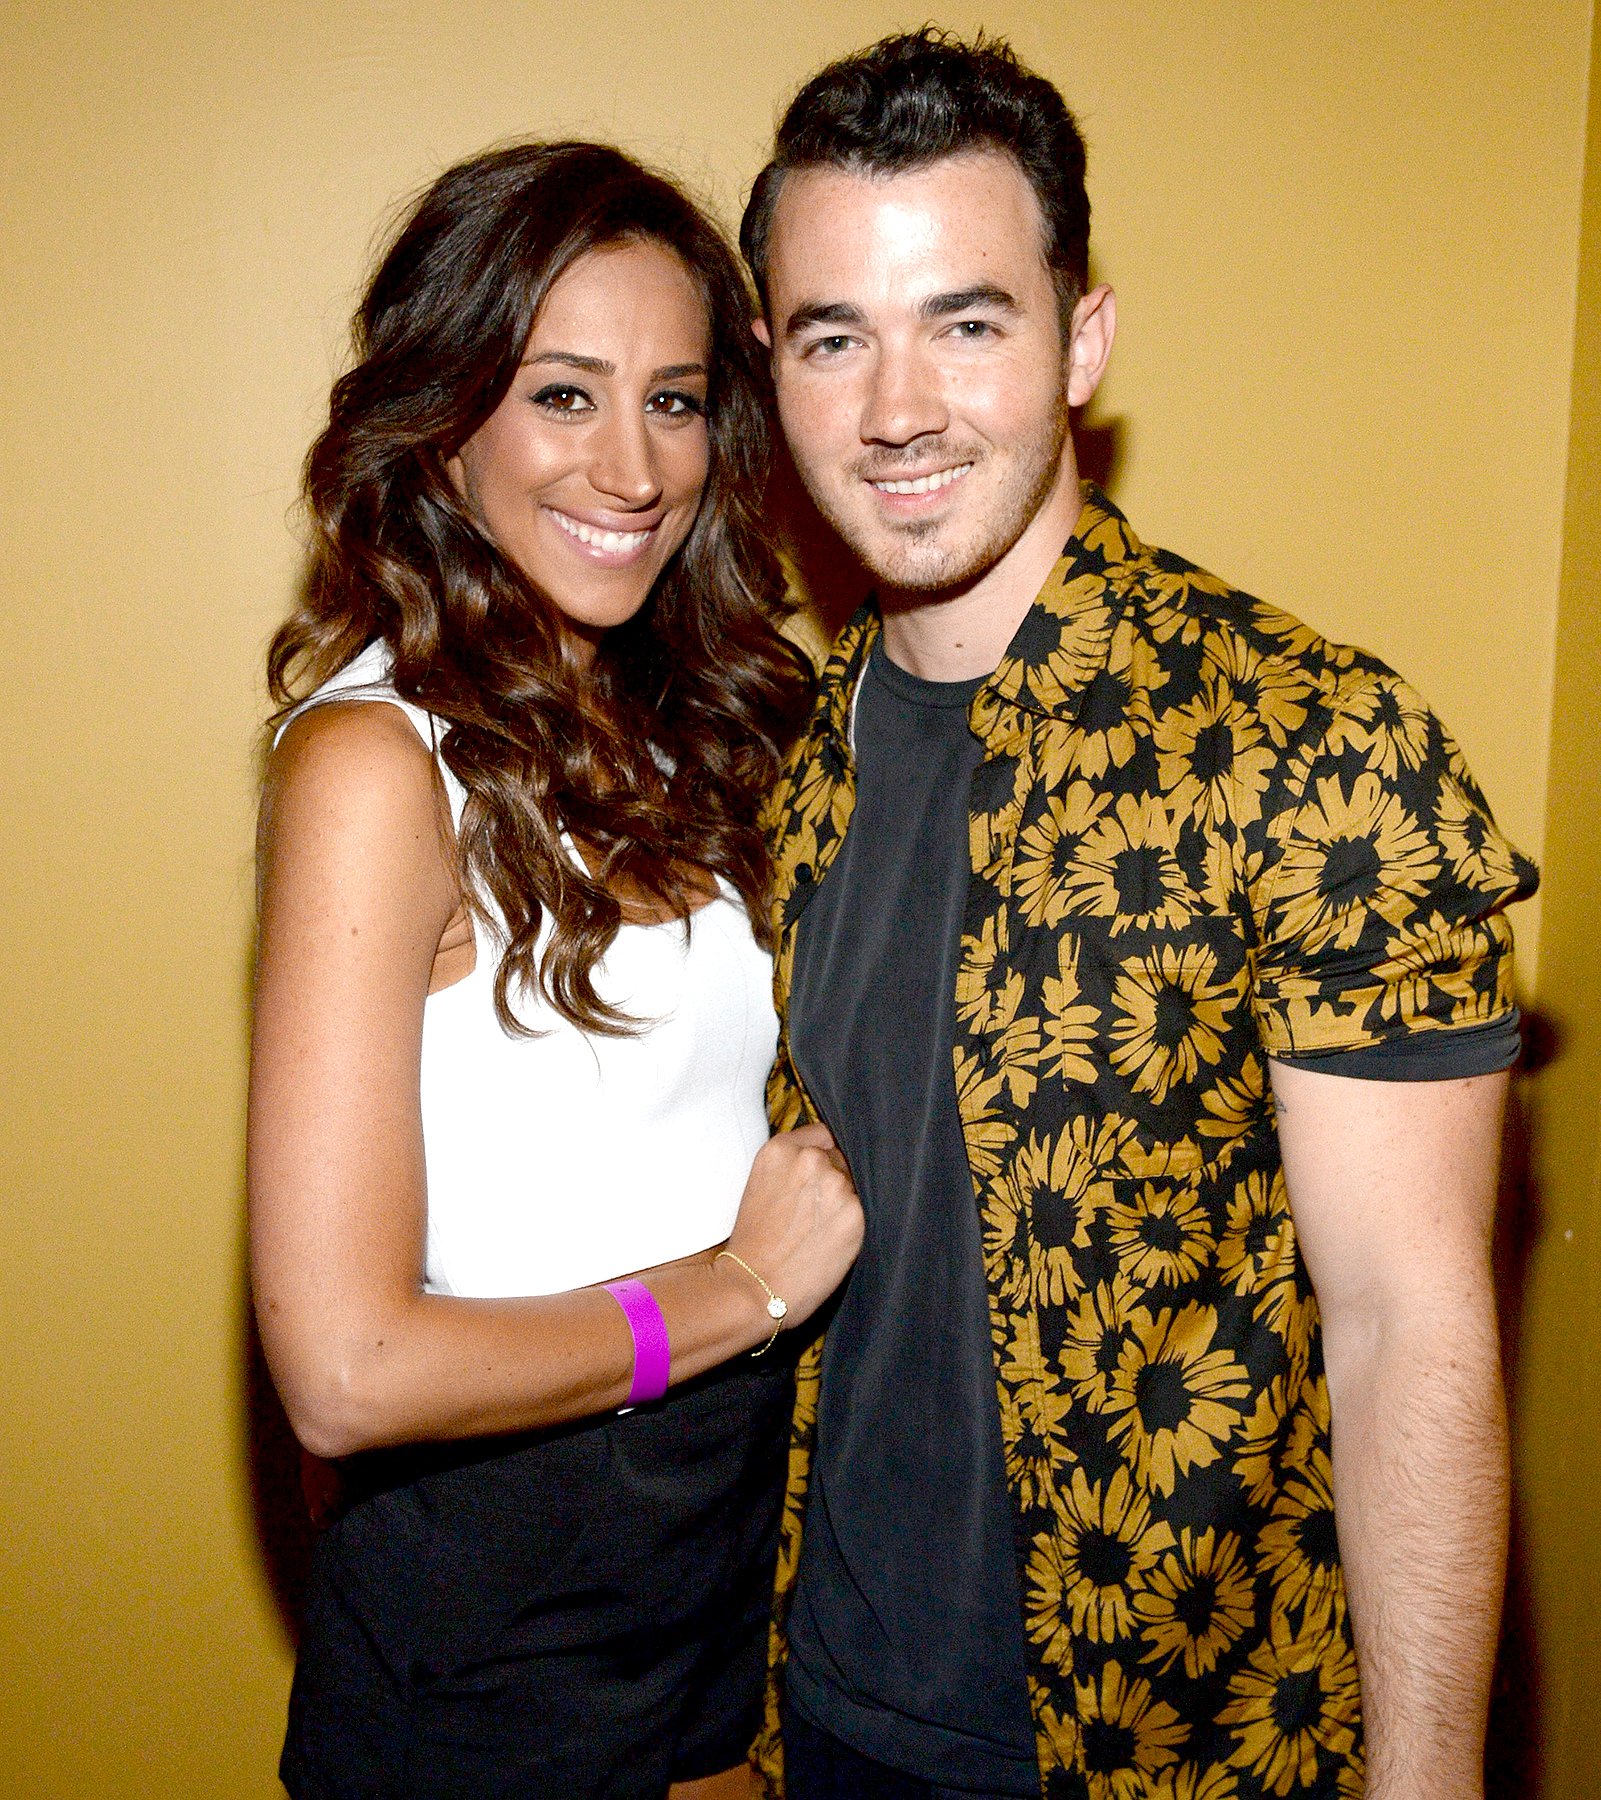 Danielle Jonas and Kevin Jonas attend a one-of-a-kind concert experience in New York City, PlentiTogether LIVE, bringing to life the